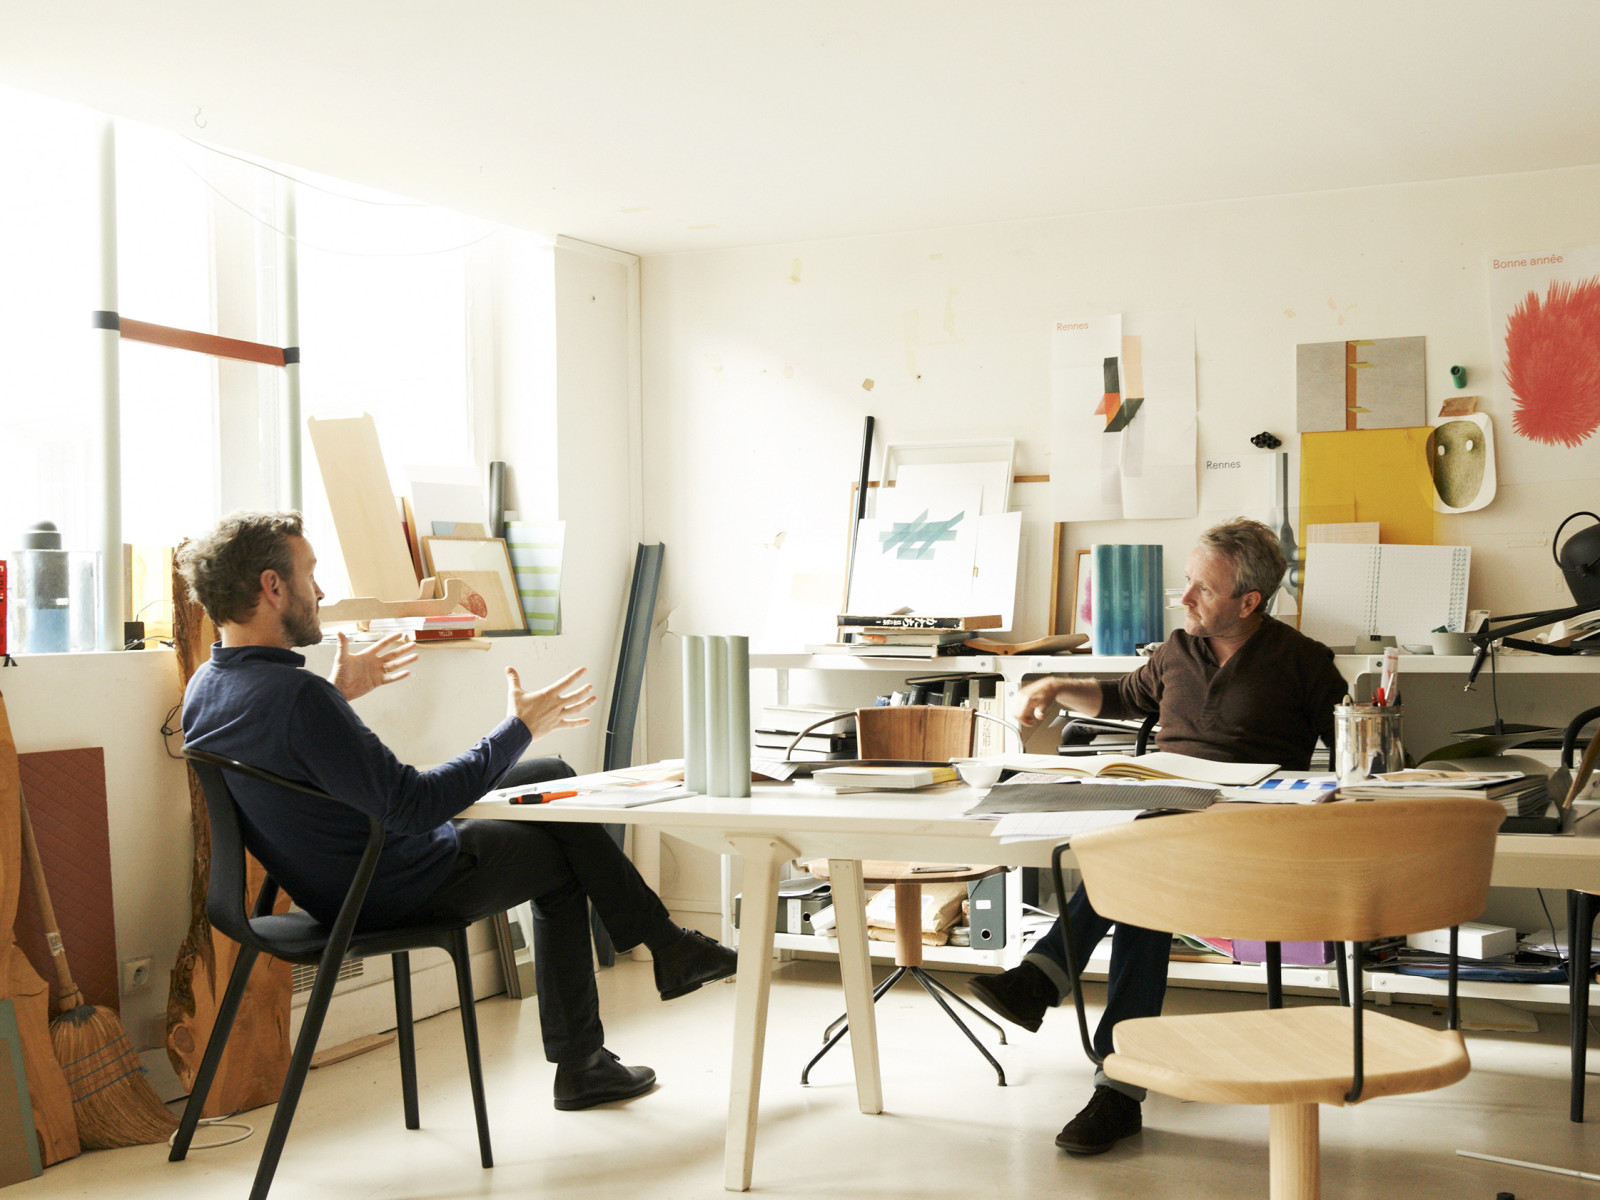 Ronan & Erwan Bouroullec a discreet charm: the first family of french product design